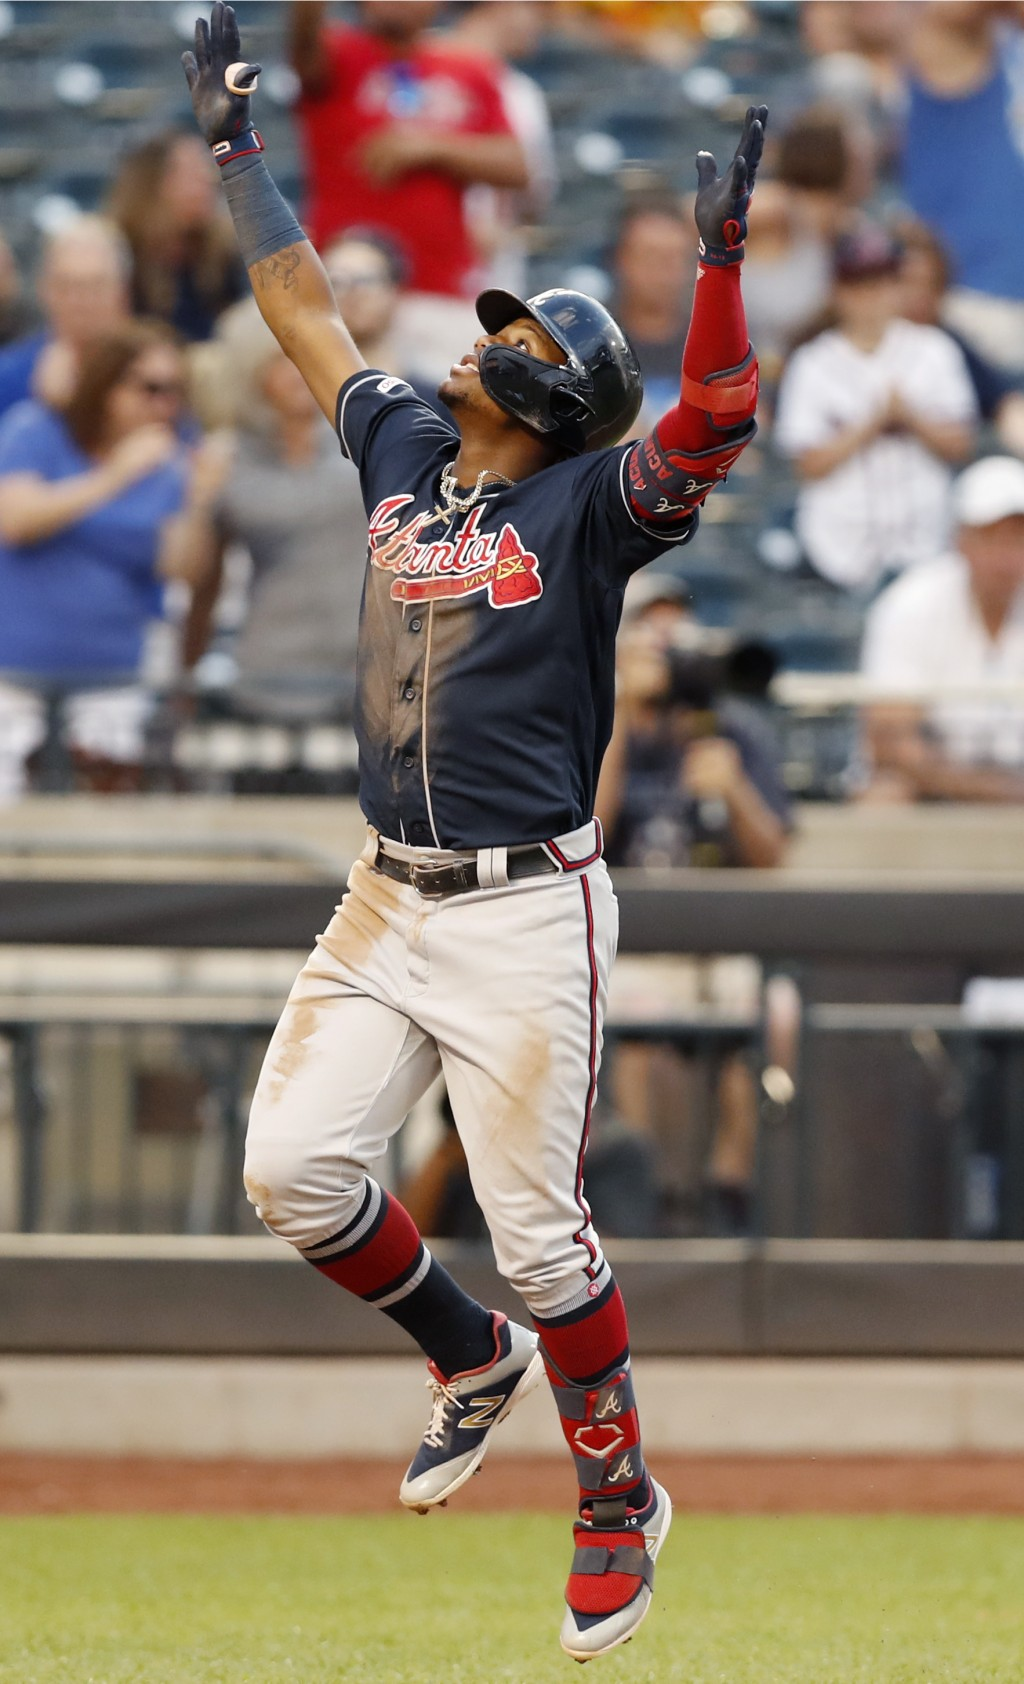 Atlanta Braves' Ronald Acuna Jr. reacts at the plate after hitting a solo home run during the third inning of a baseball game against the New York Met...